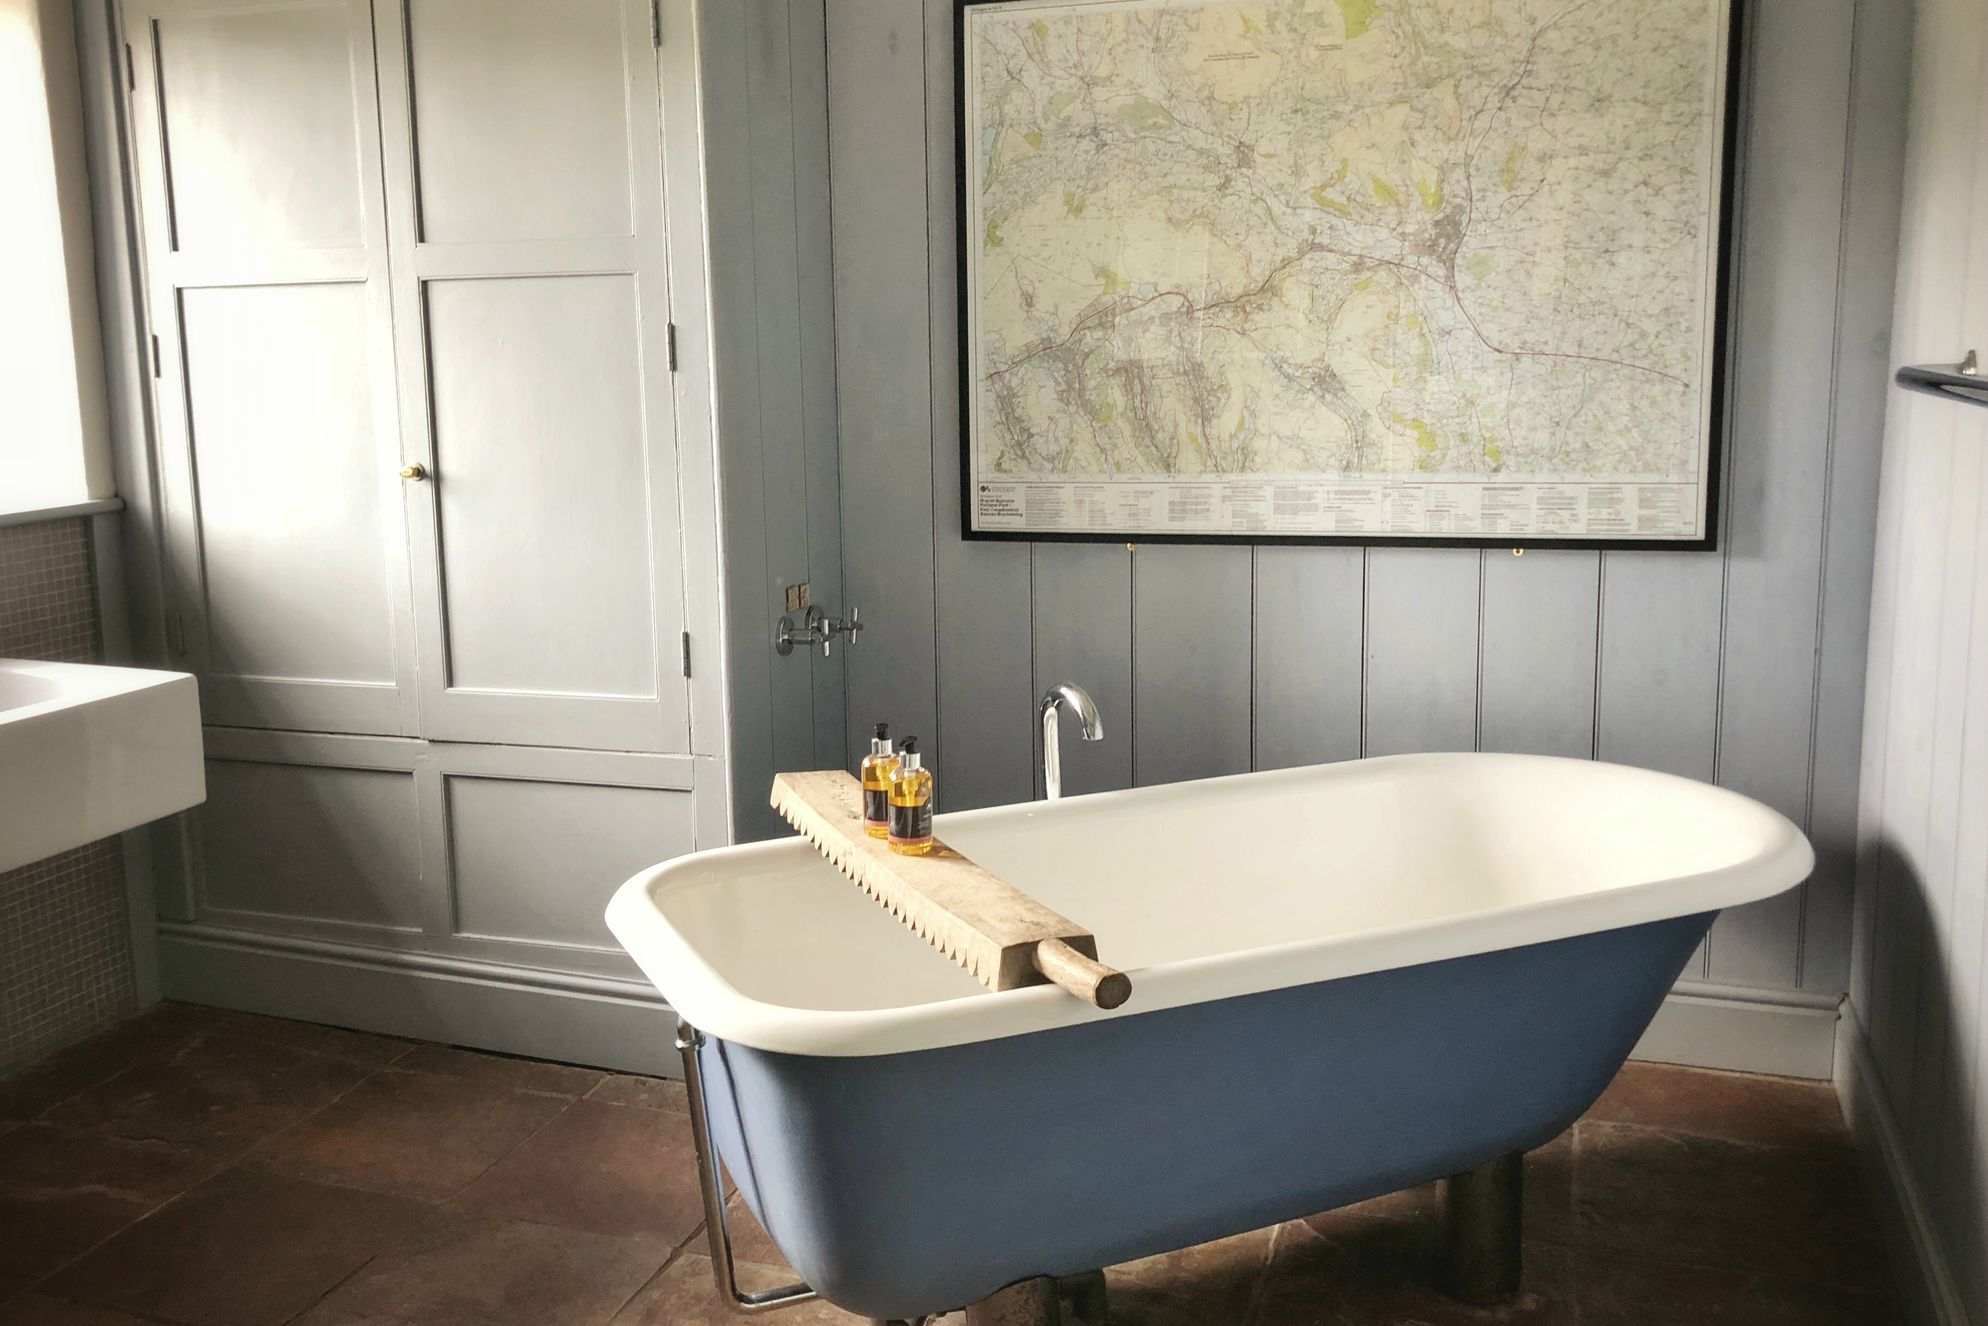 Bathroom at Sycamore House with lovely blue roll top bath against soft grey walls snd OS-style map of local area on the wall